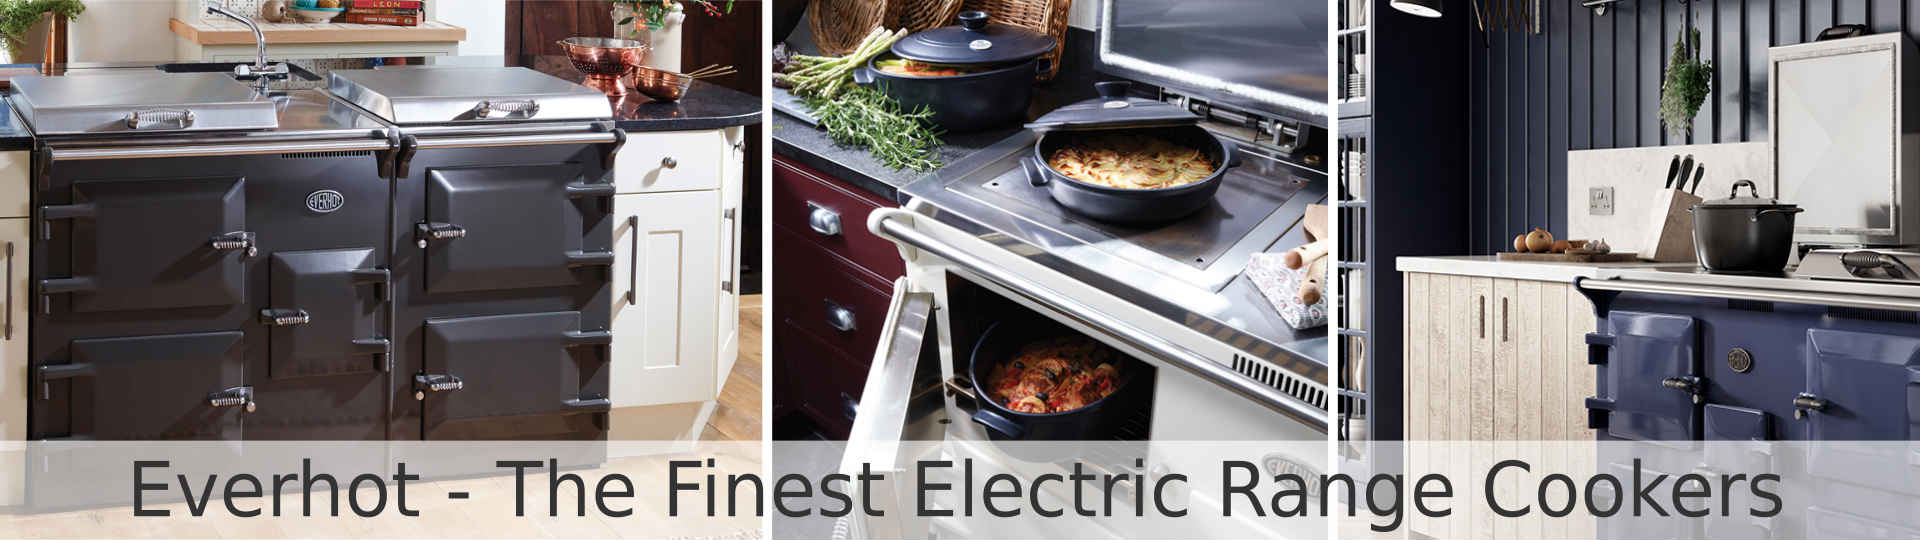 Everhot cookers West Wales